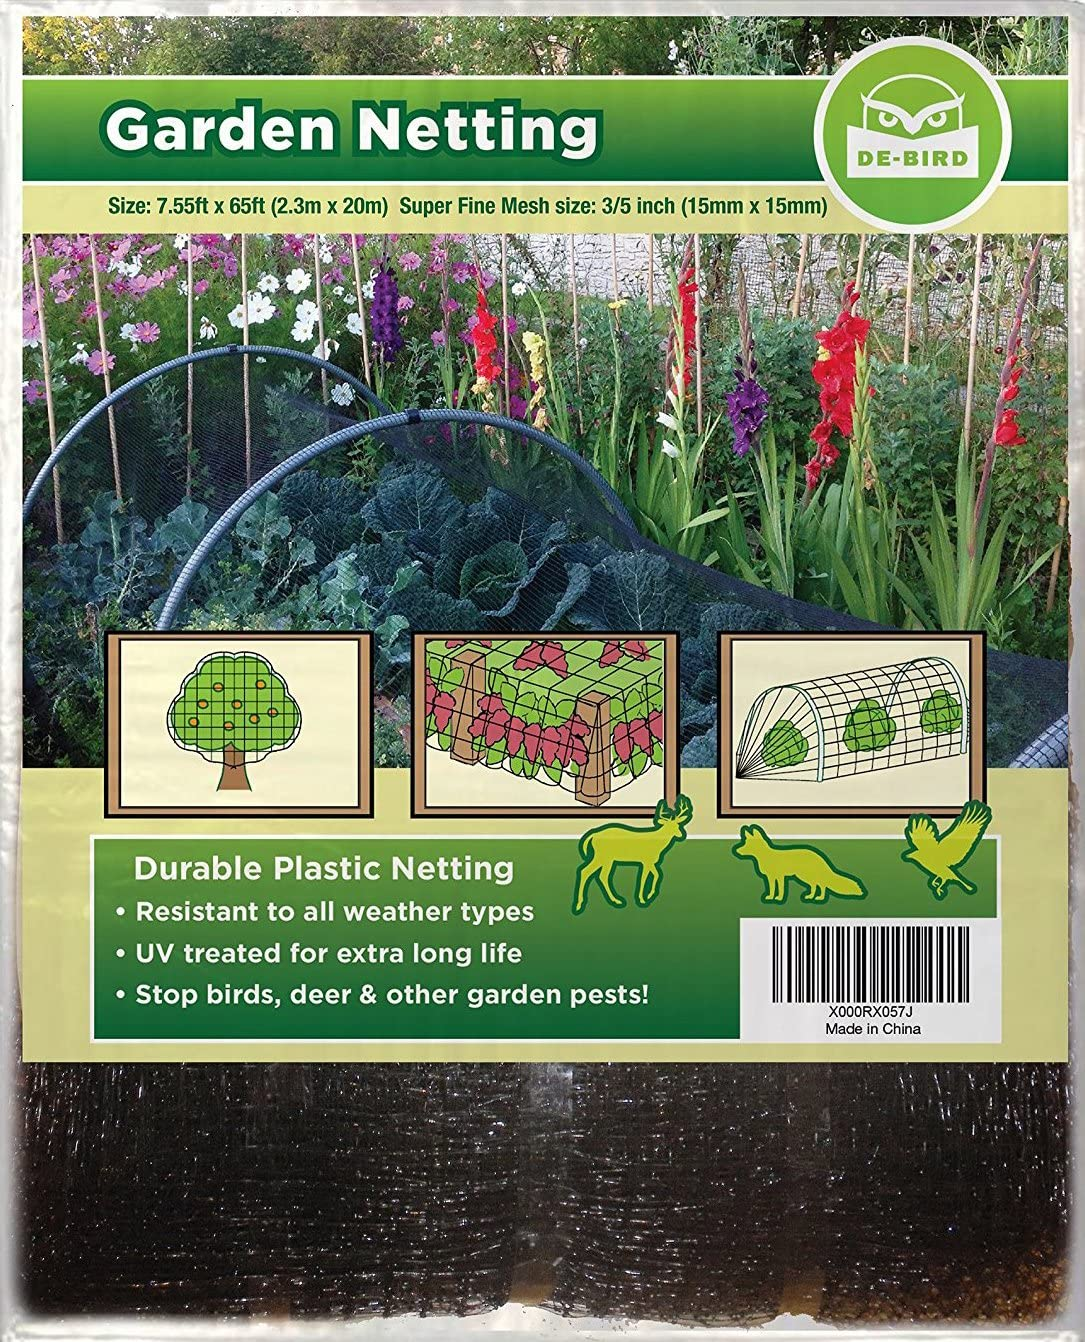 Bird Netting Heavy Duty Protect Plants and Fruit Trees – Extra Strong Garden Net Is Easy to Use, Doesn t Tangle and Reusable – Lasting Protection Against Birds, Deer and Other Pests 7.5ft x 65ft